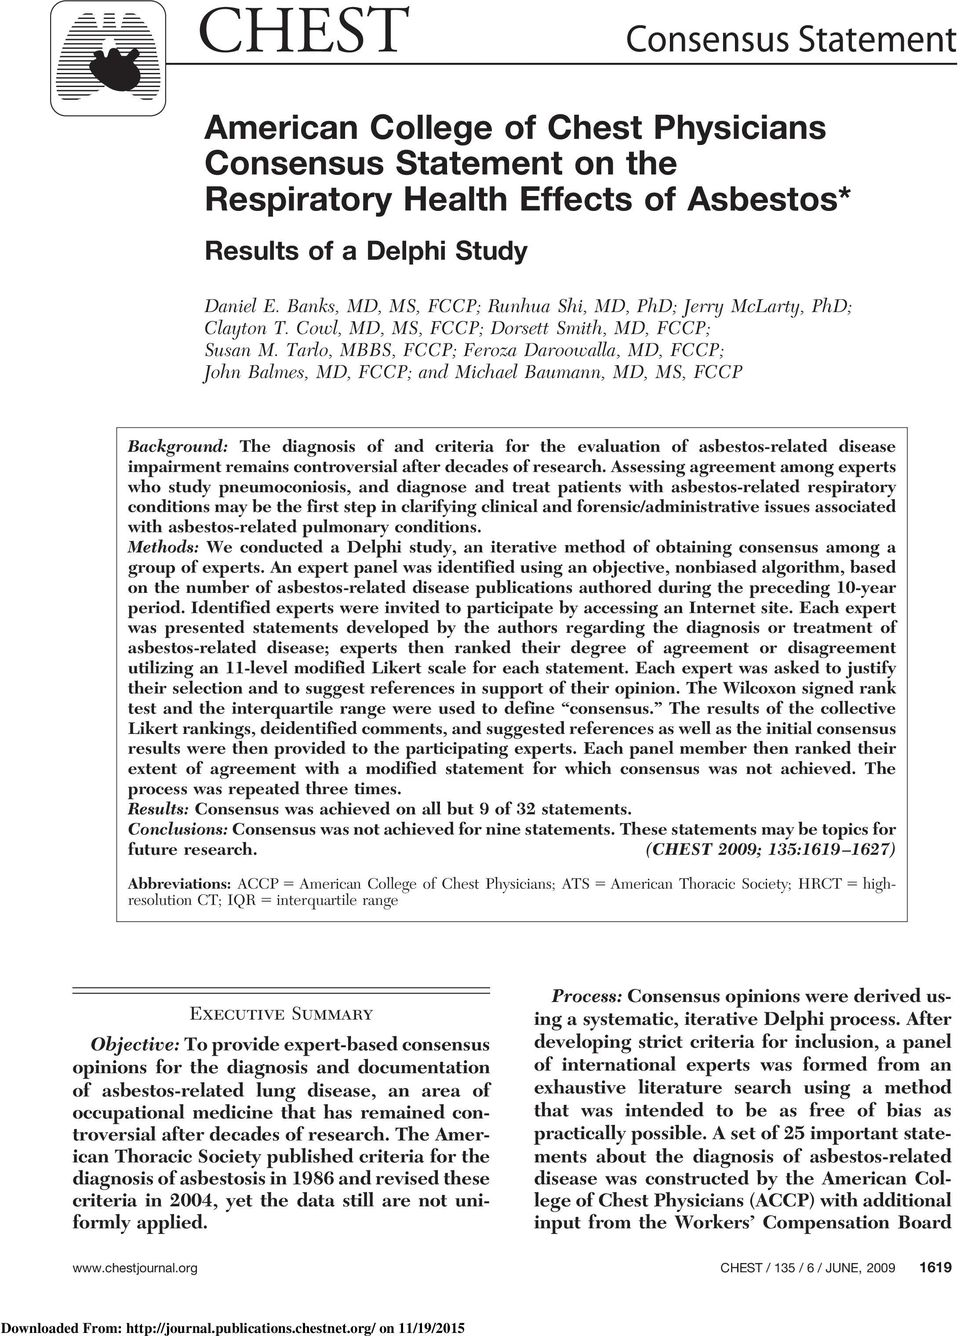 Tarlo, MBBS, FCCP; Feroza Daroowalla, MD, FCCP; John Balmes, MD, FCCP; and Michael Baumann, MD, MS, FCCP Background: The diagnosis of and criteria for the evaluation of asbestos-related disease